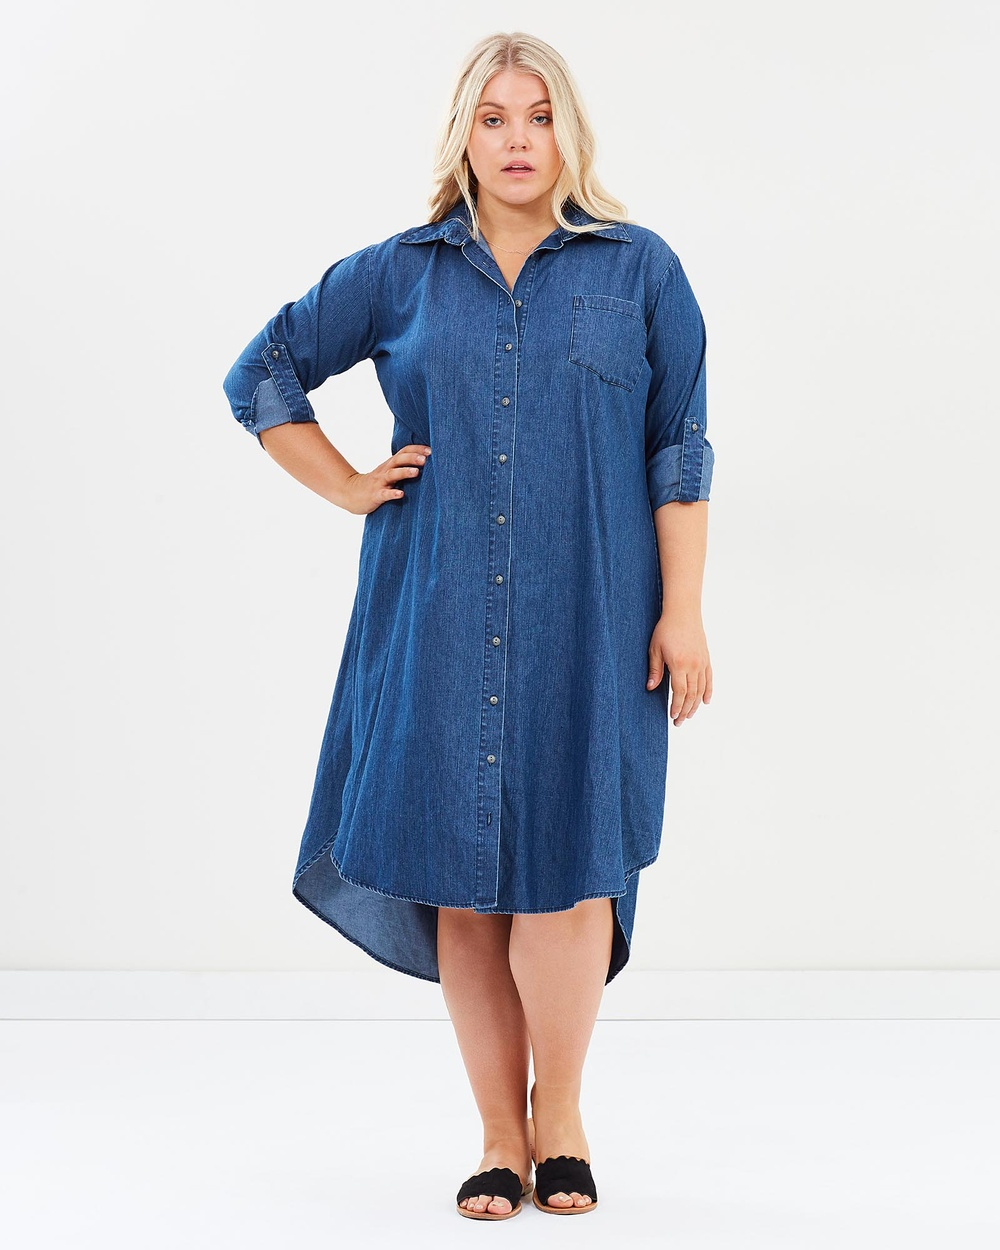 Buy Hope & Harvest Rosario Vintage Wash Dress Dresses Blue Denim Rosario Vintage Wash Dress shop Hope & Harvest dresses online Designed for stylish trans-seasonal dressing, meet the Rosario Vintage Wash Dress by Hope & Harvest. Constructed from cotton denim in a mid-blue vintage wash, the long-sleeved dress features a button-through front, single chest pocket and a drop back hemline. Wear with your go-to sneakers or dress it up with tan ankle boots. Our model is wearing a size 14/16 dress.